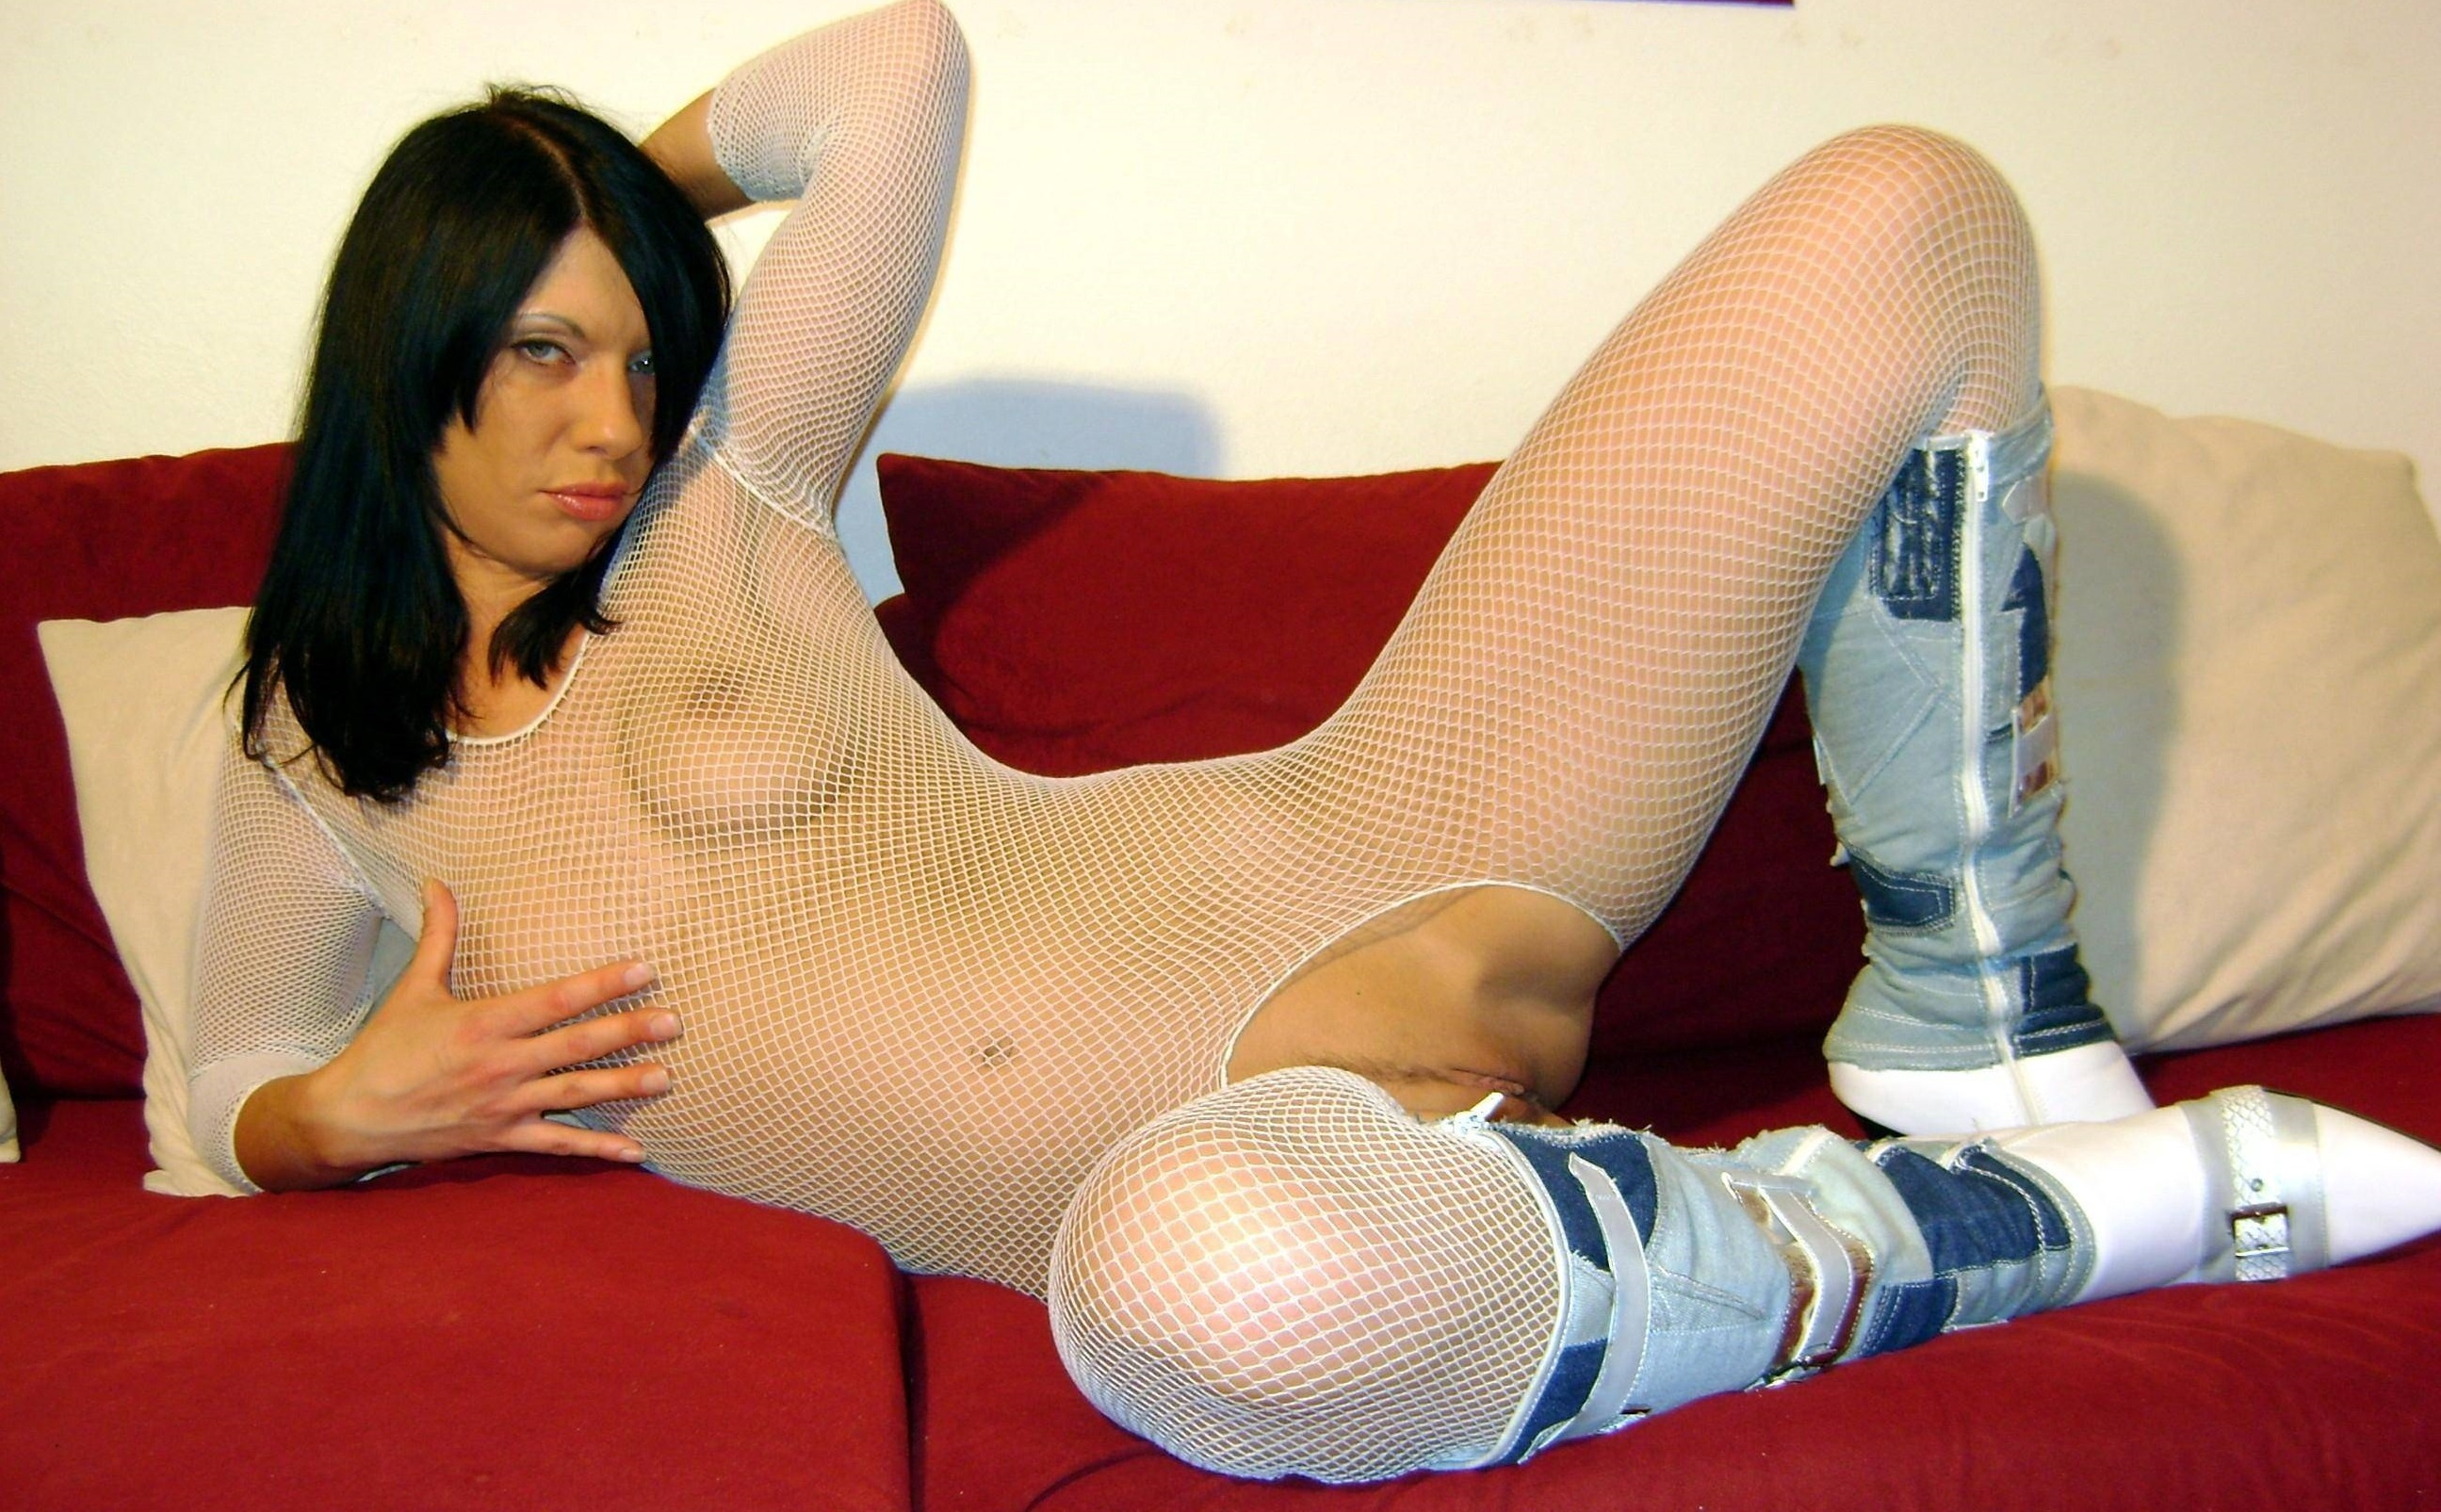 Remarkable Brunette fishnet sexy agree, this